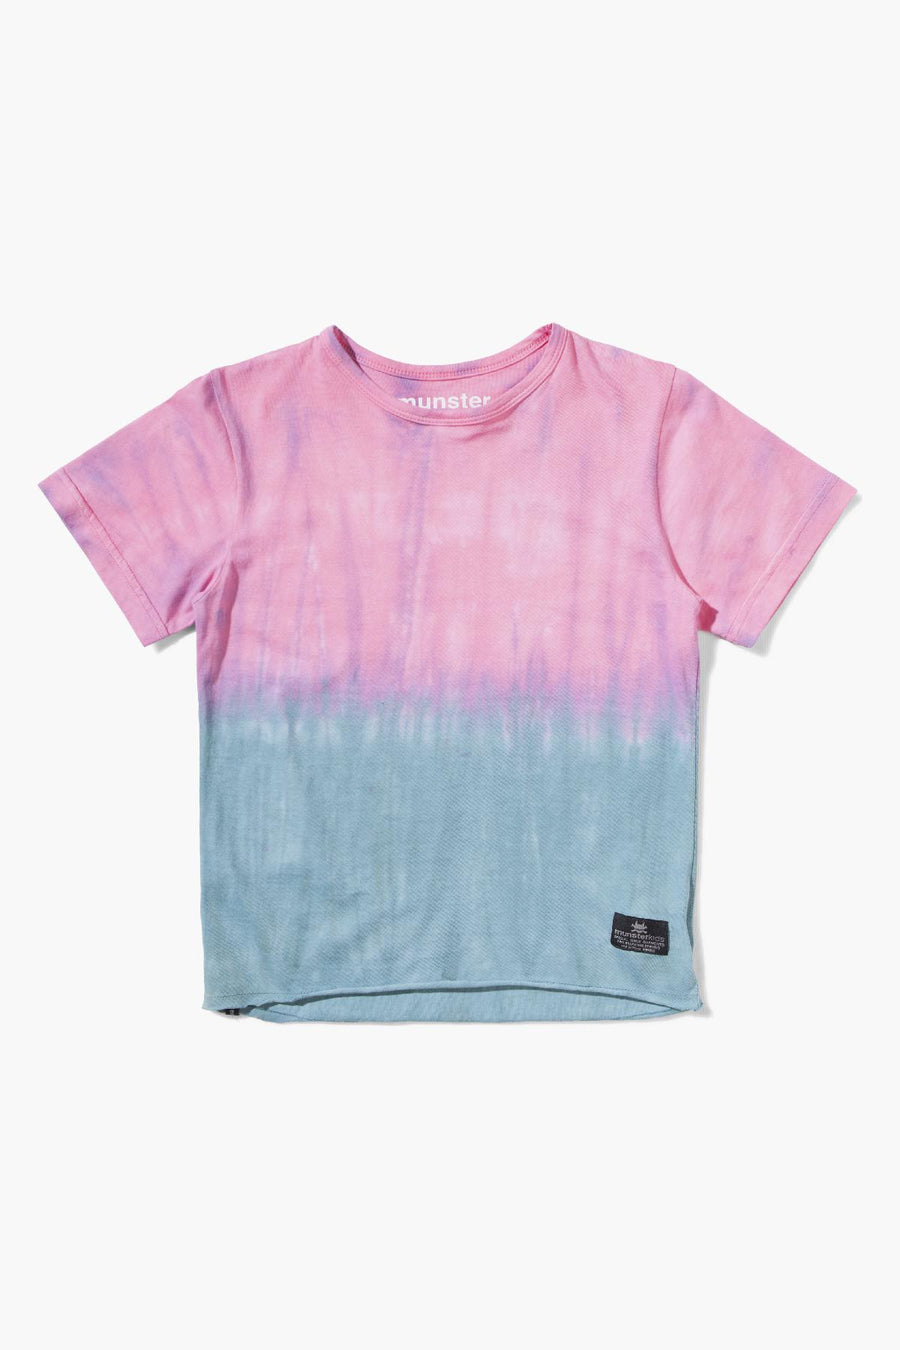 Munster Kids Splitz Boys T-Shirt - Magenta